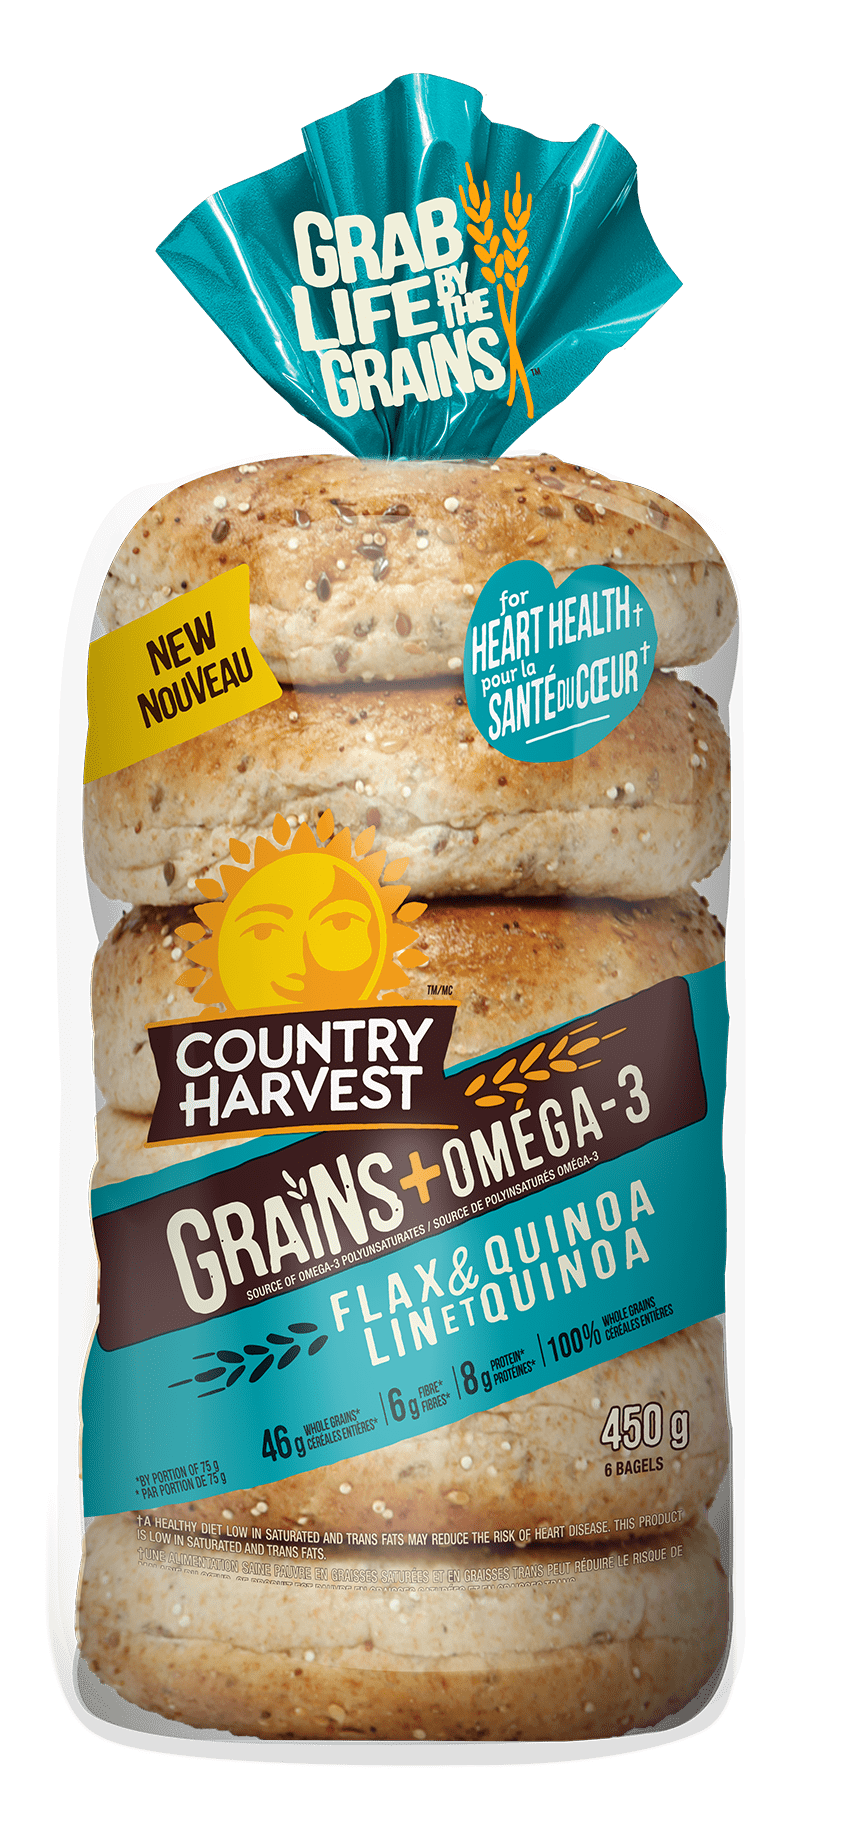 Country-Harvest-Flax-and-Quinoa-Bagel-Pack-min-1